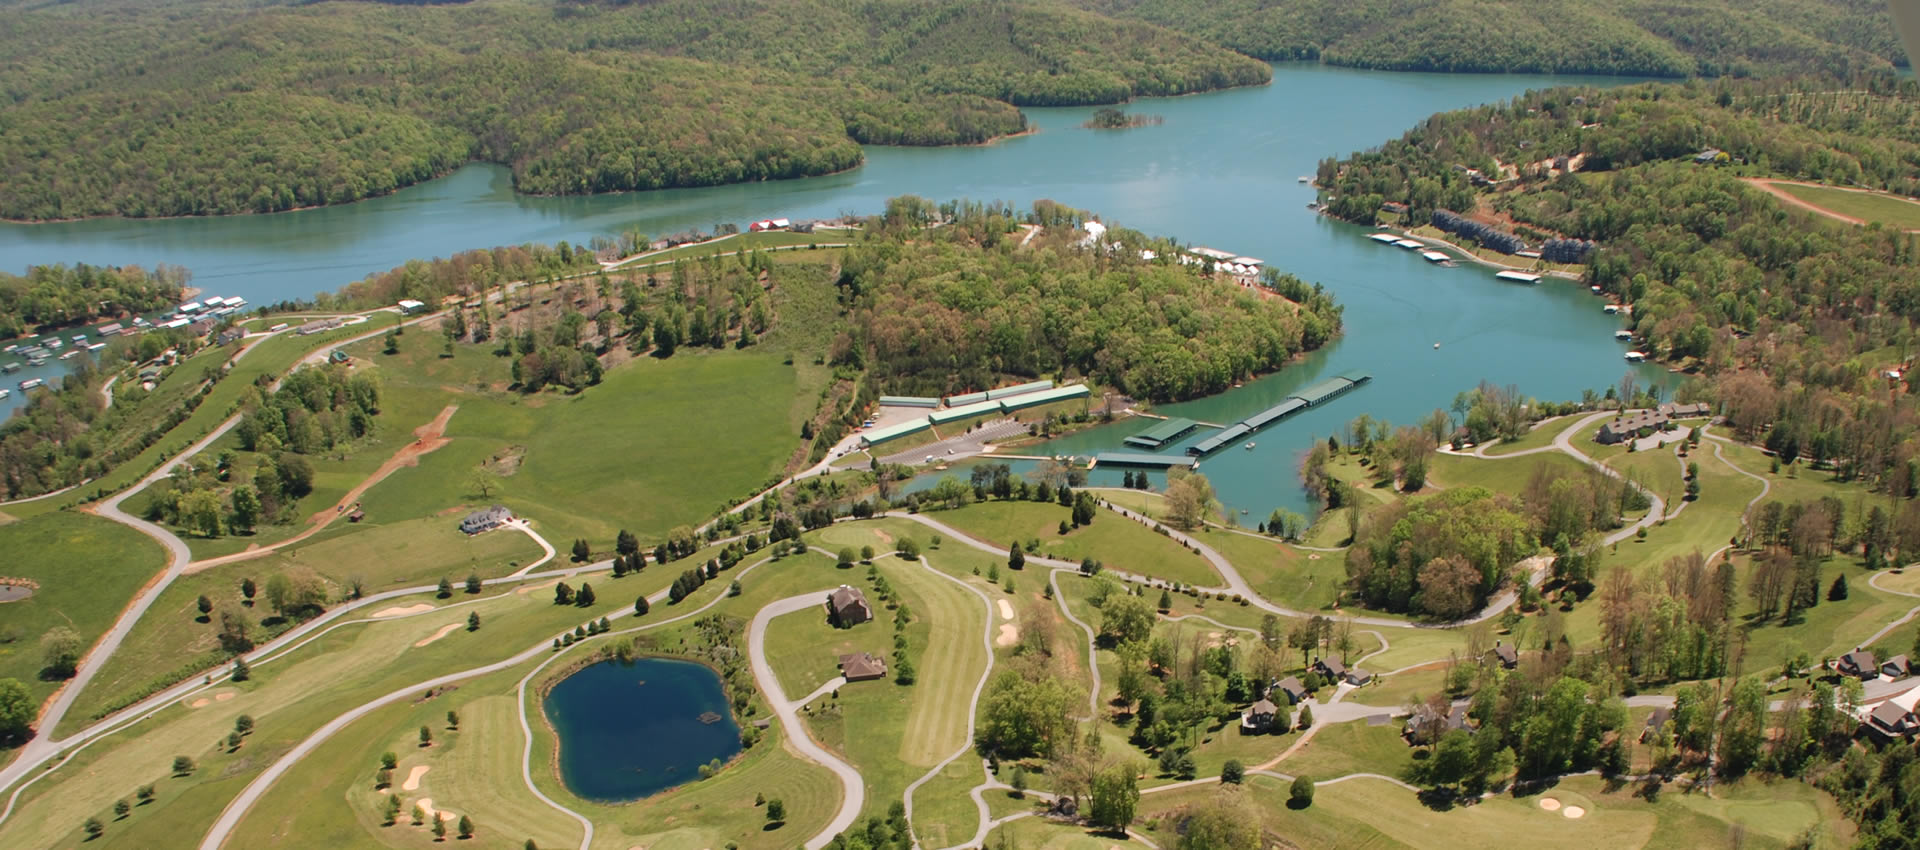 Deerfield resort norris lake norris lake rentals for Norris lake fishing